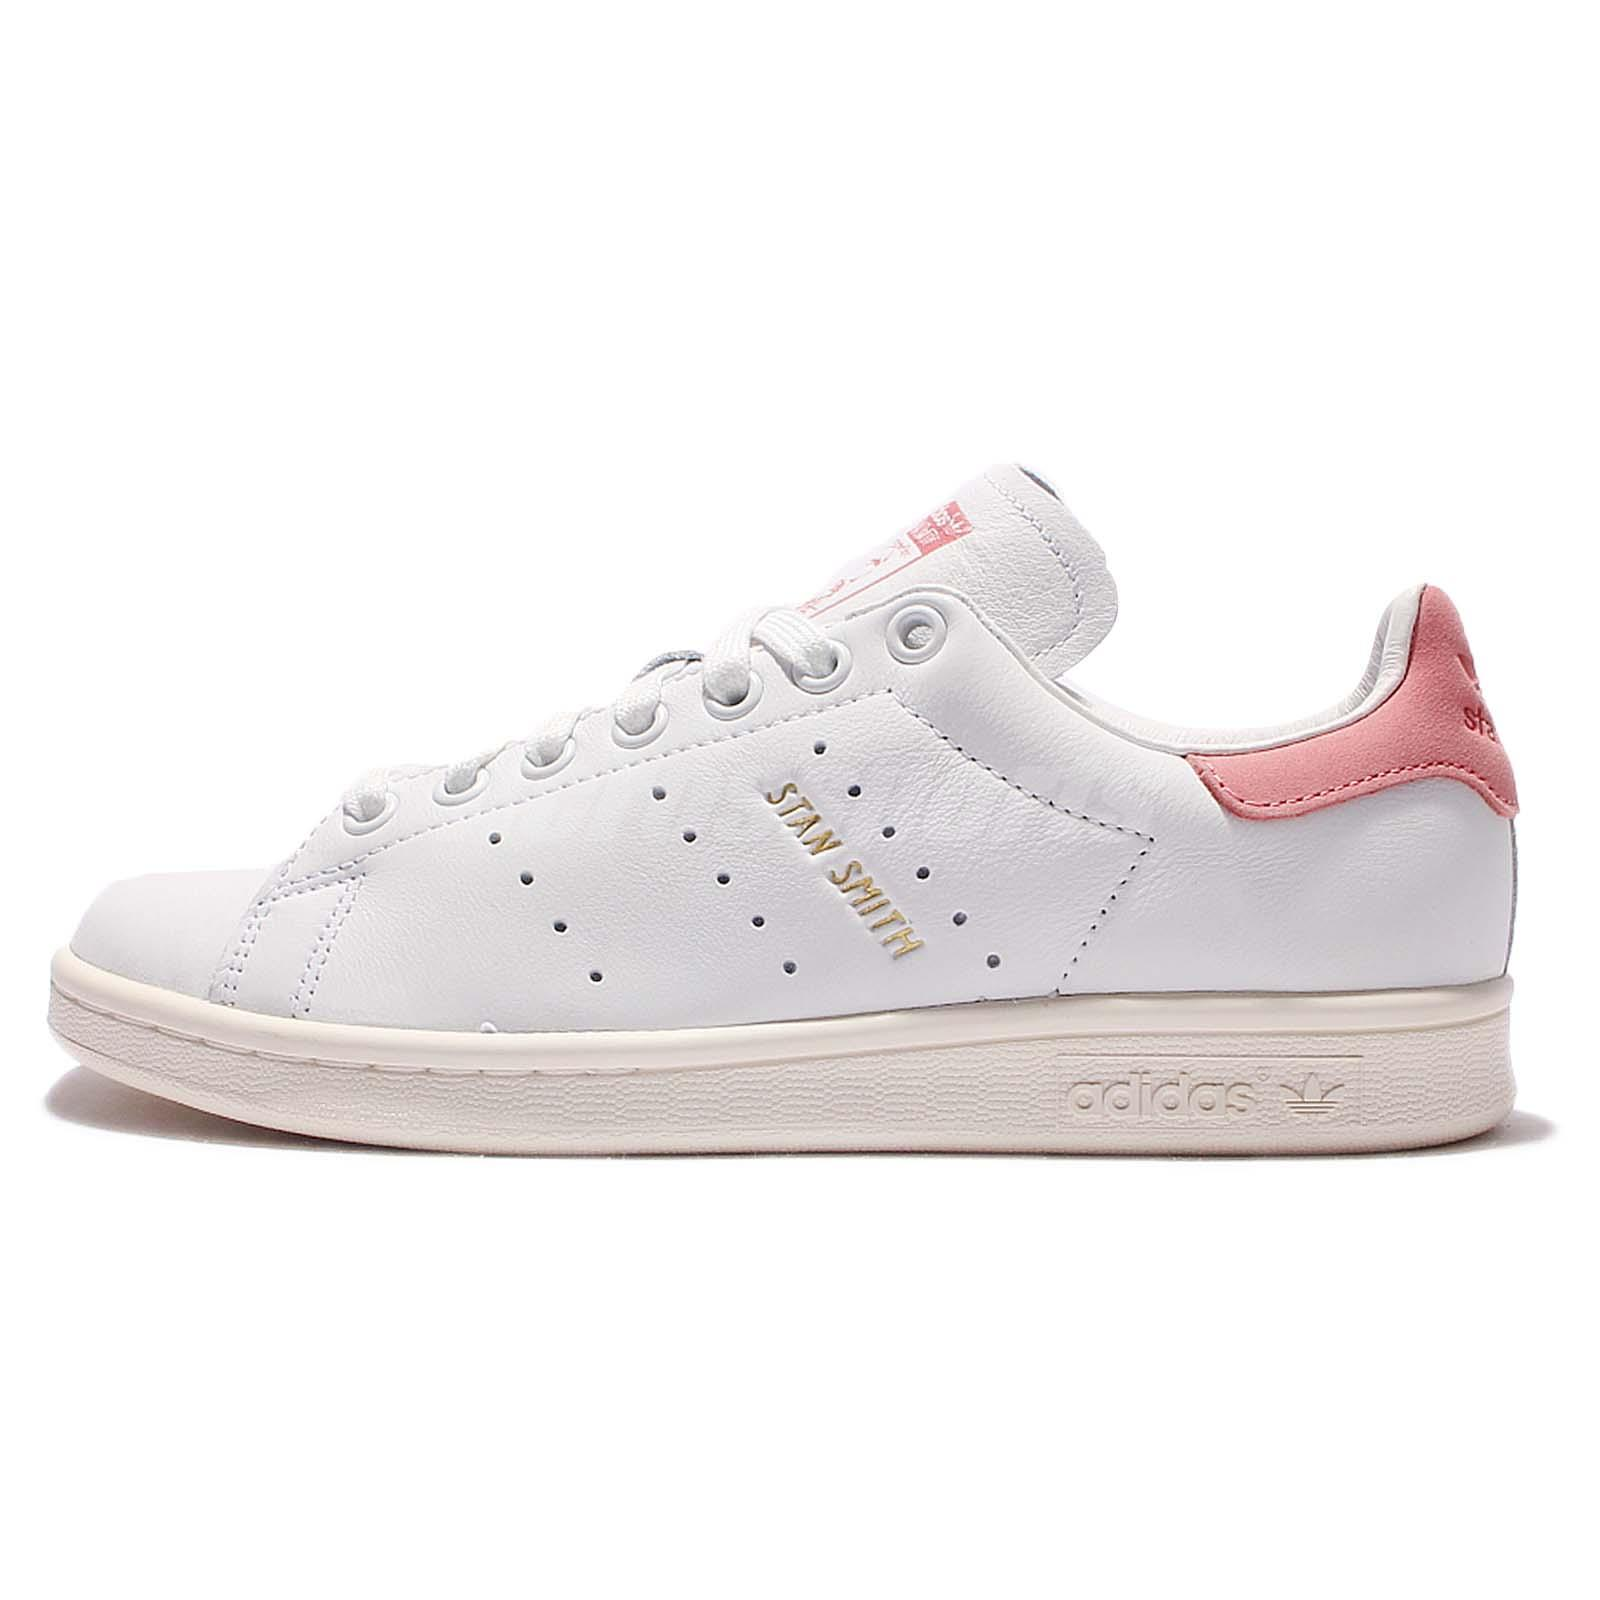 adidas originals stan smith leather white pink mens casual. Black Bedroom Furniture Sets. Home Design Ideas